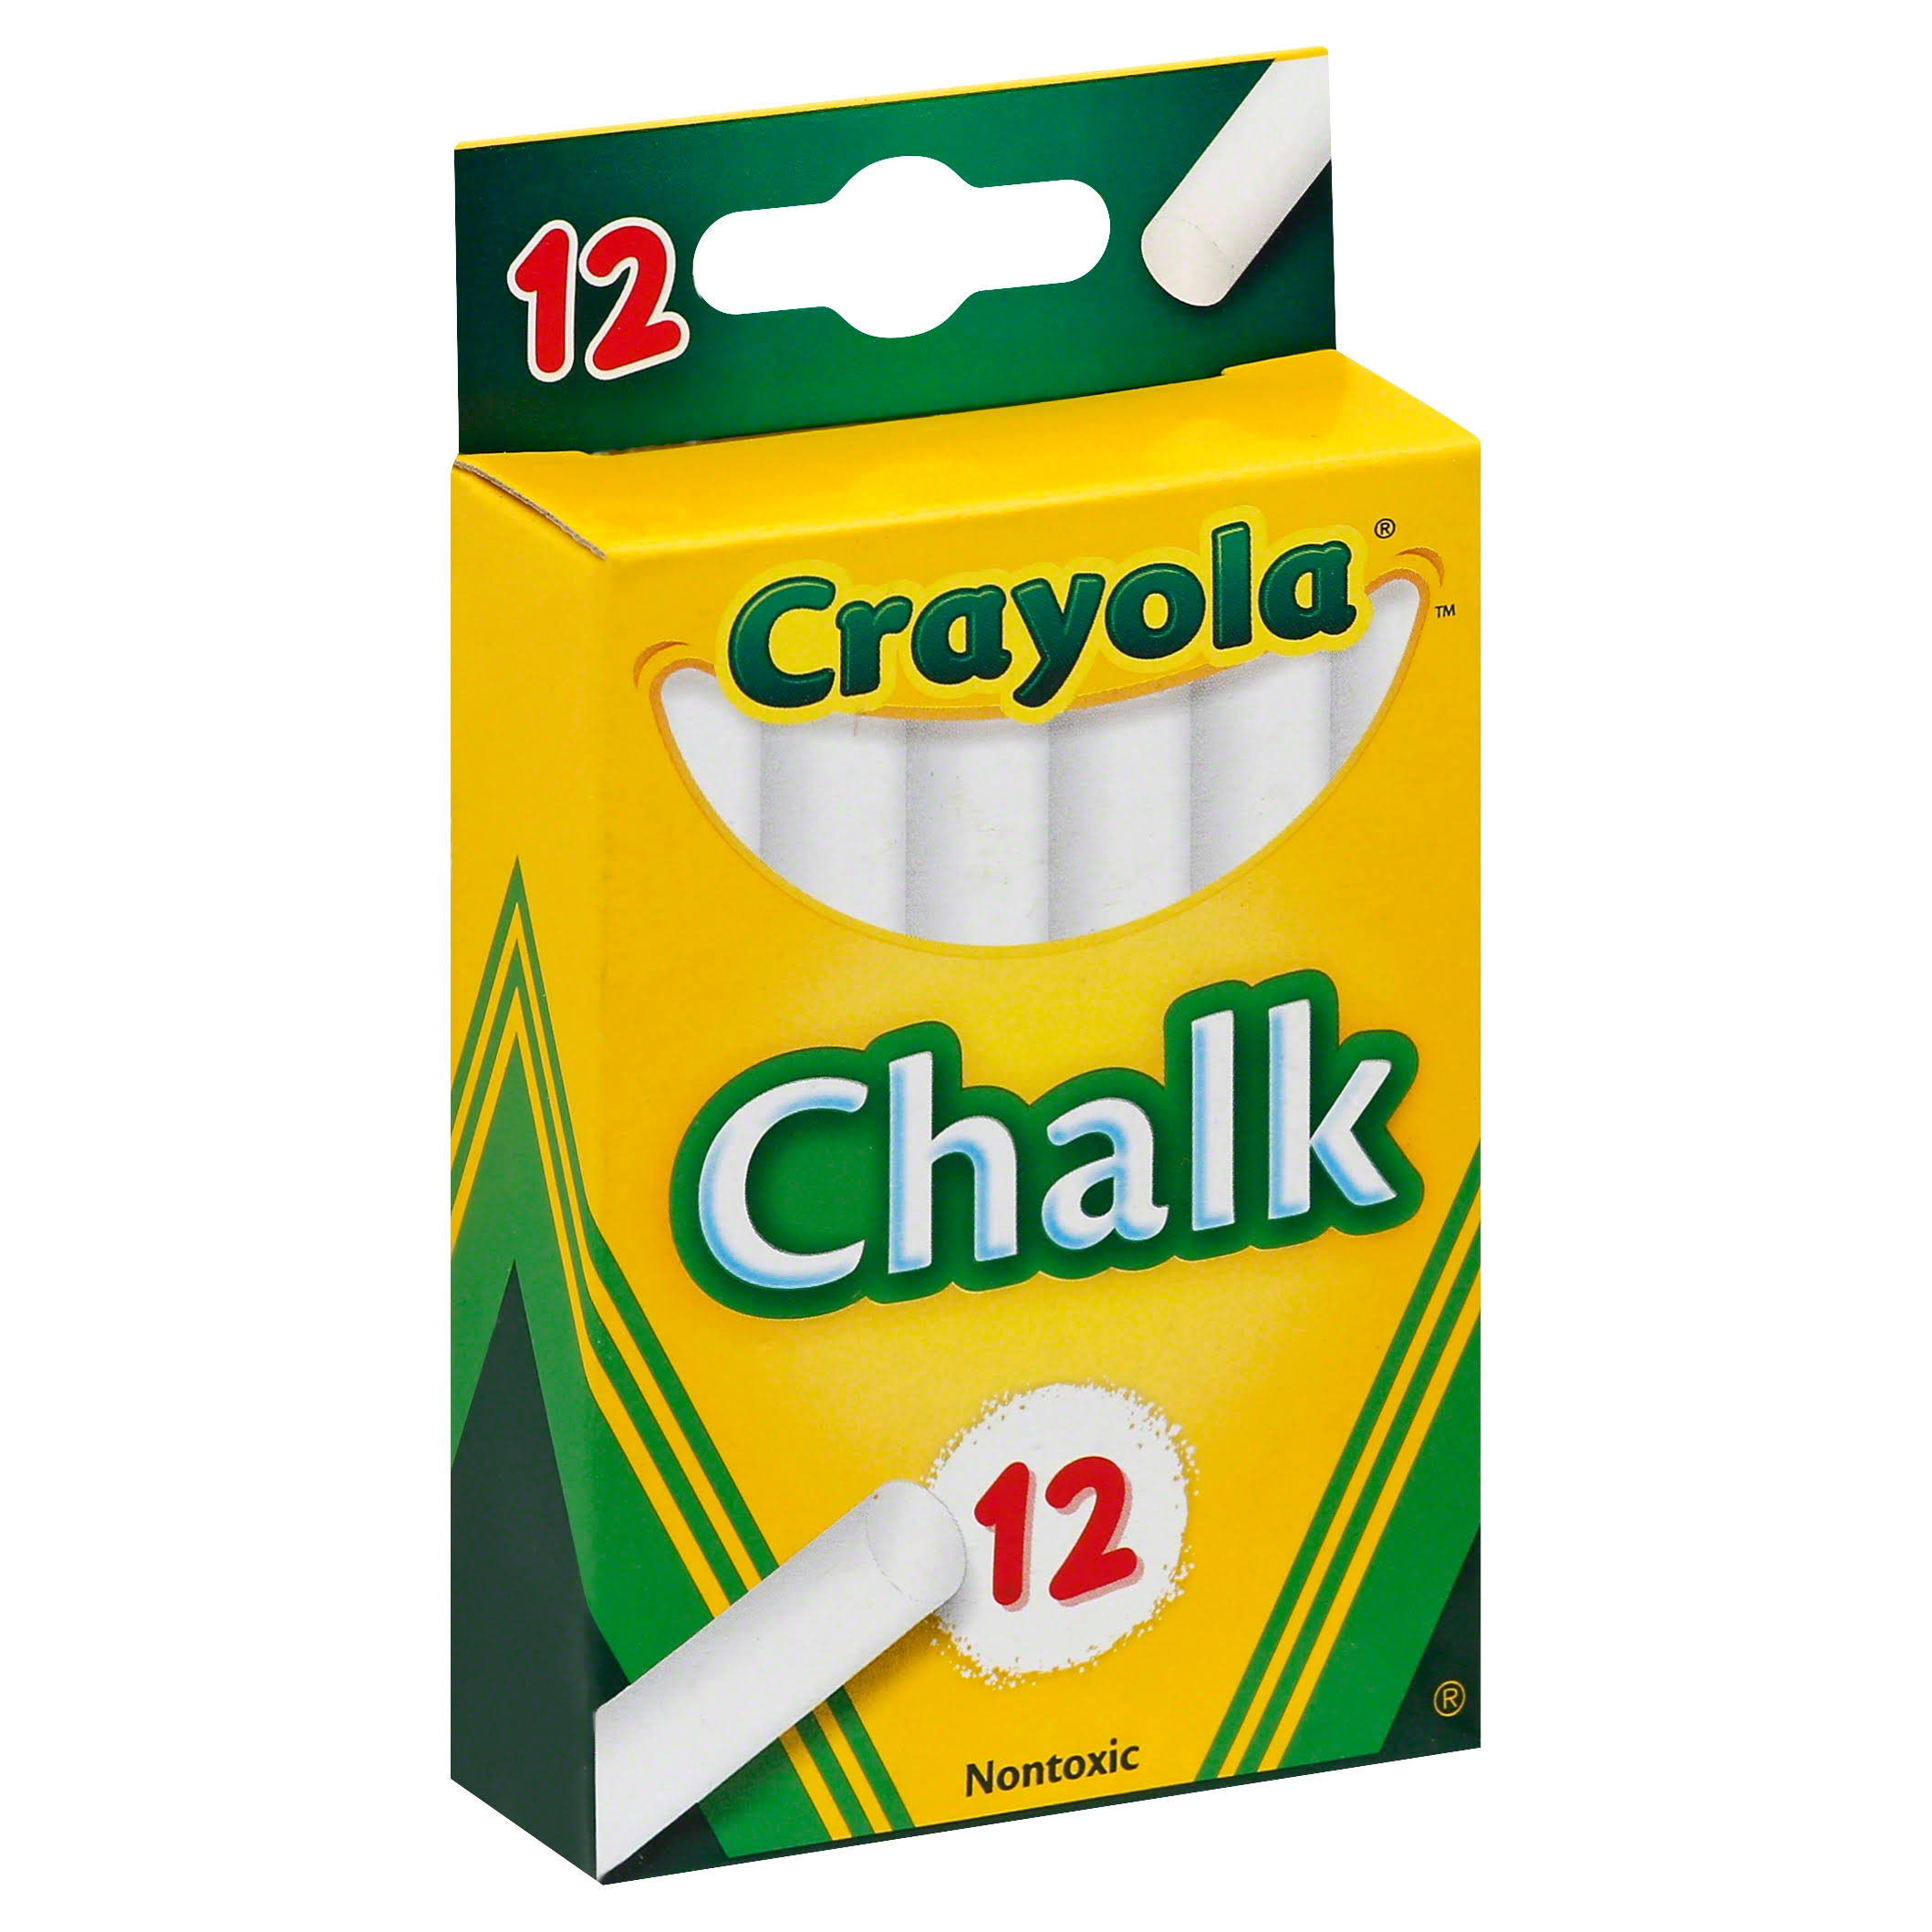 Crayola Chalk - White, 12 Pack